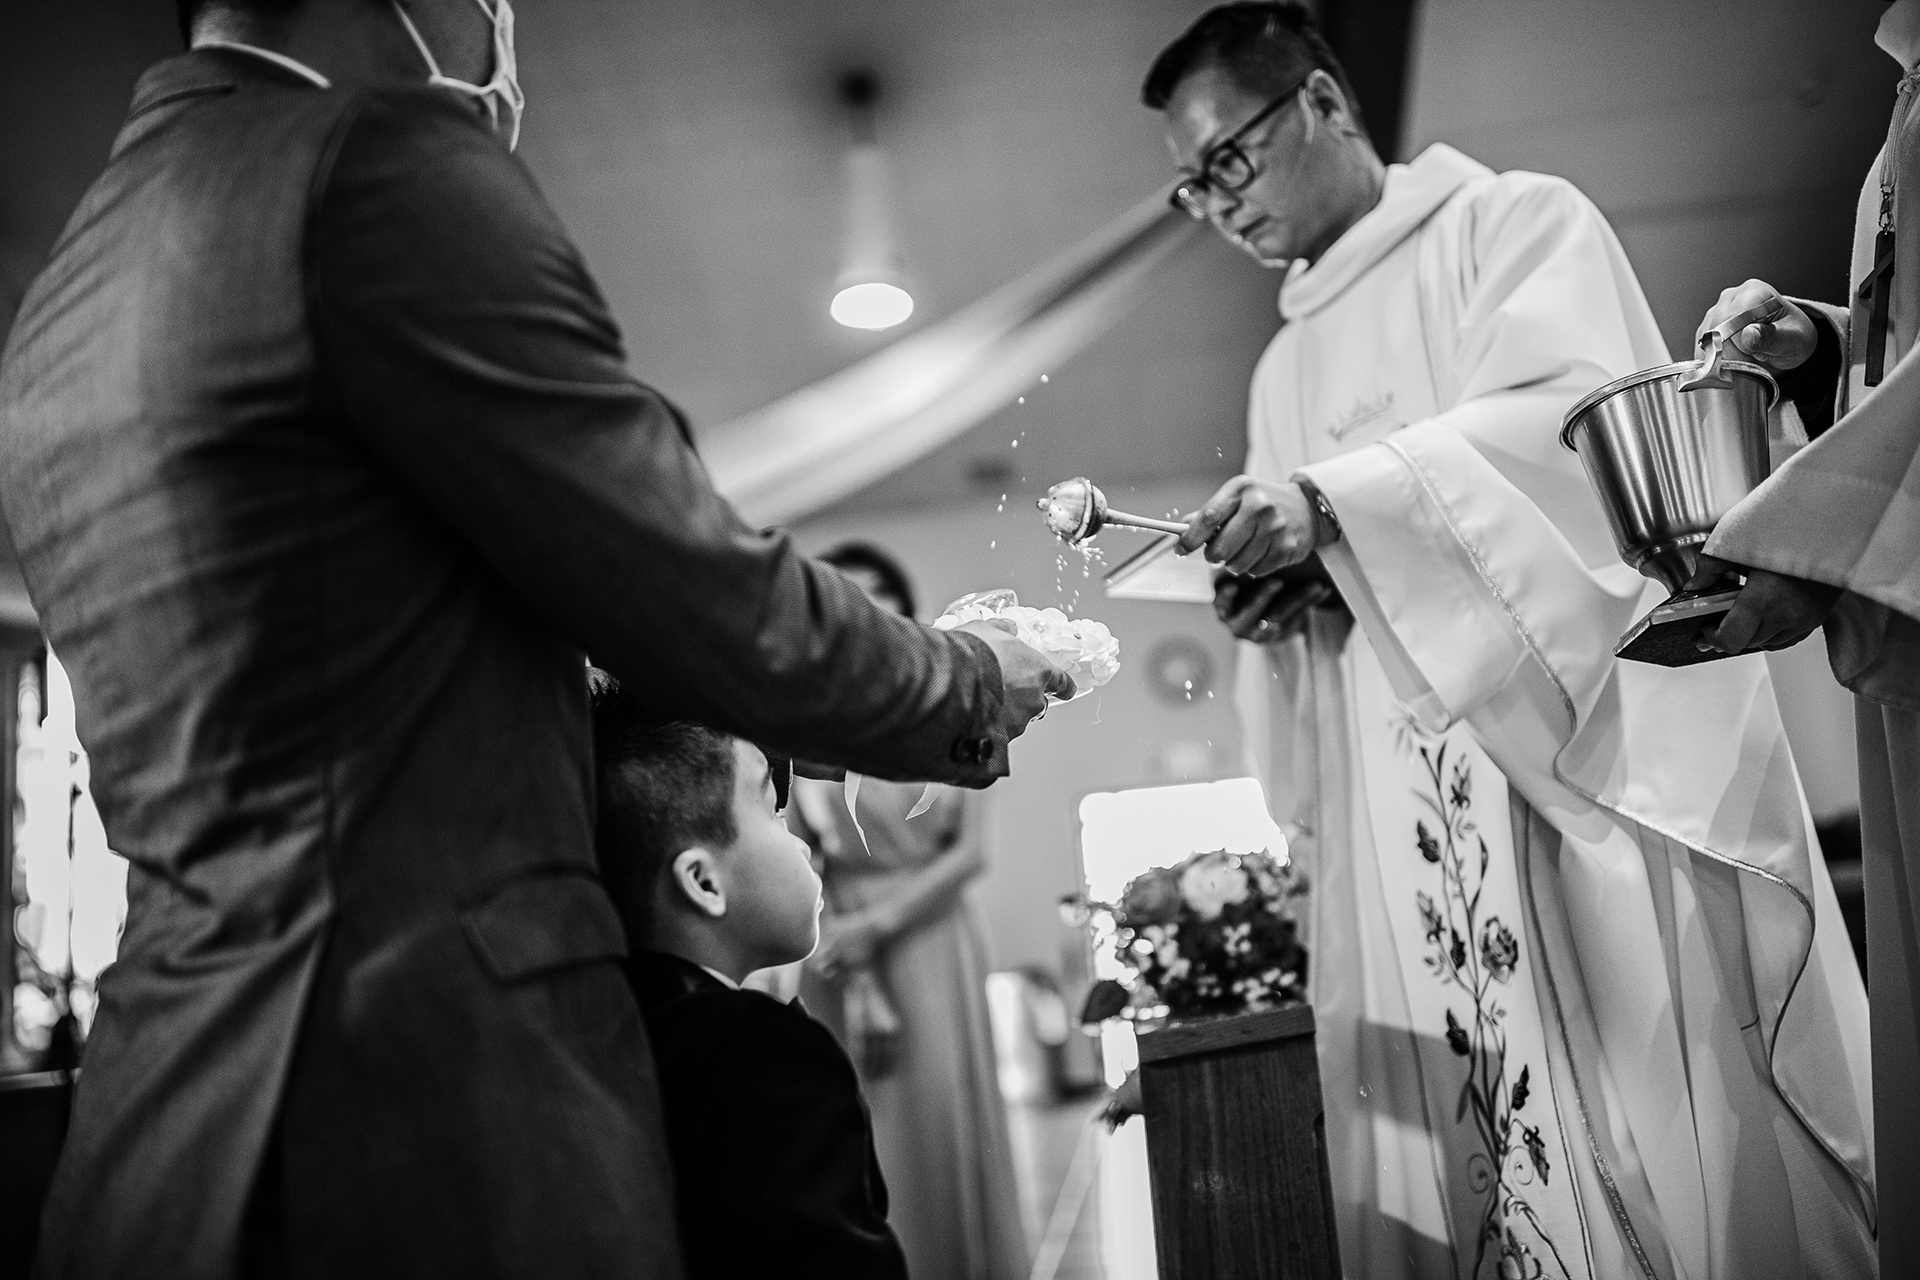 San Jose church COVID wedding images | The ring bearer watches in awe as the wedding rings are blessed